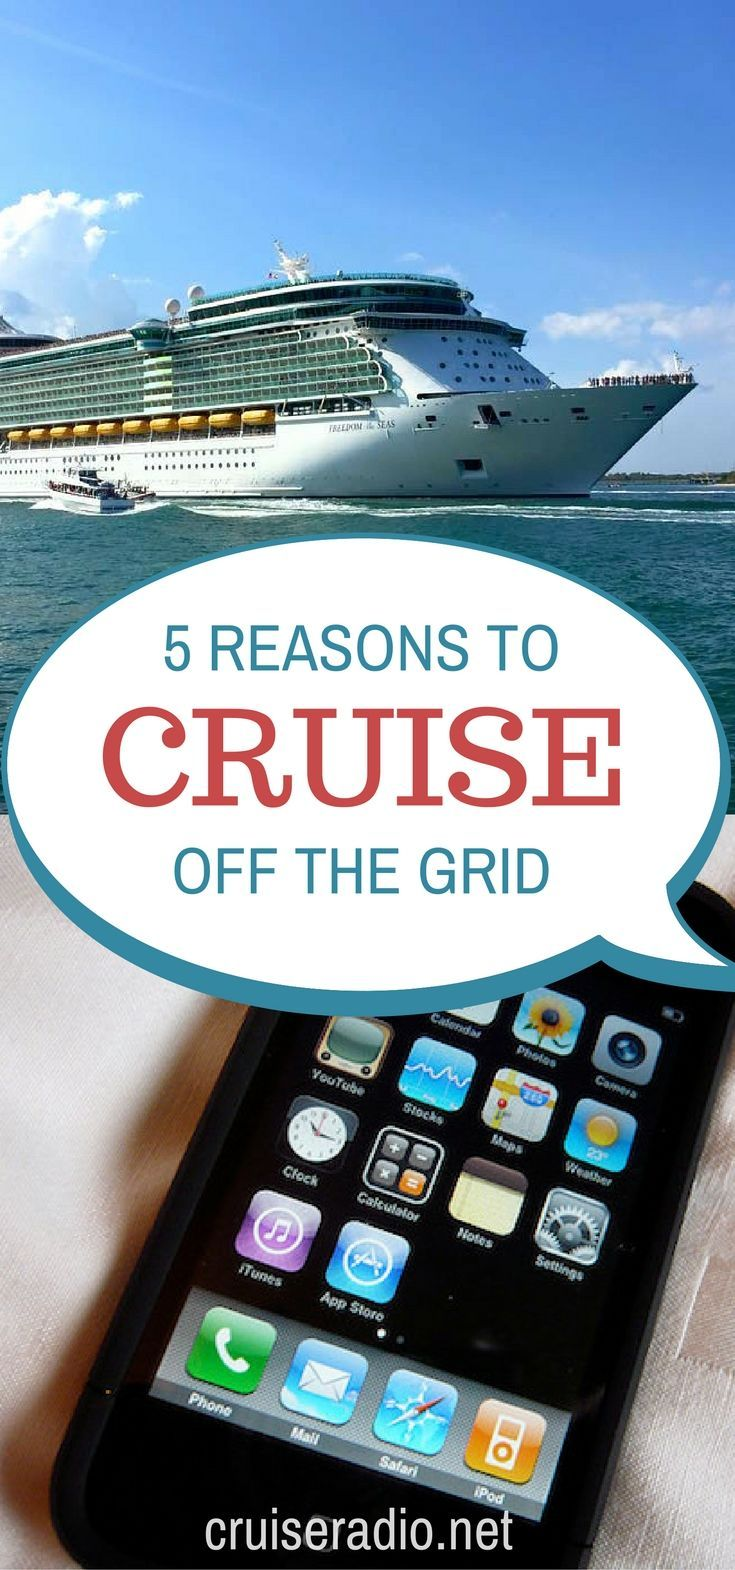 #cruise #phone #tech #cruising #traveltips #cruisetips #traveling #wander #vacation